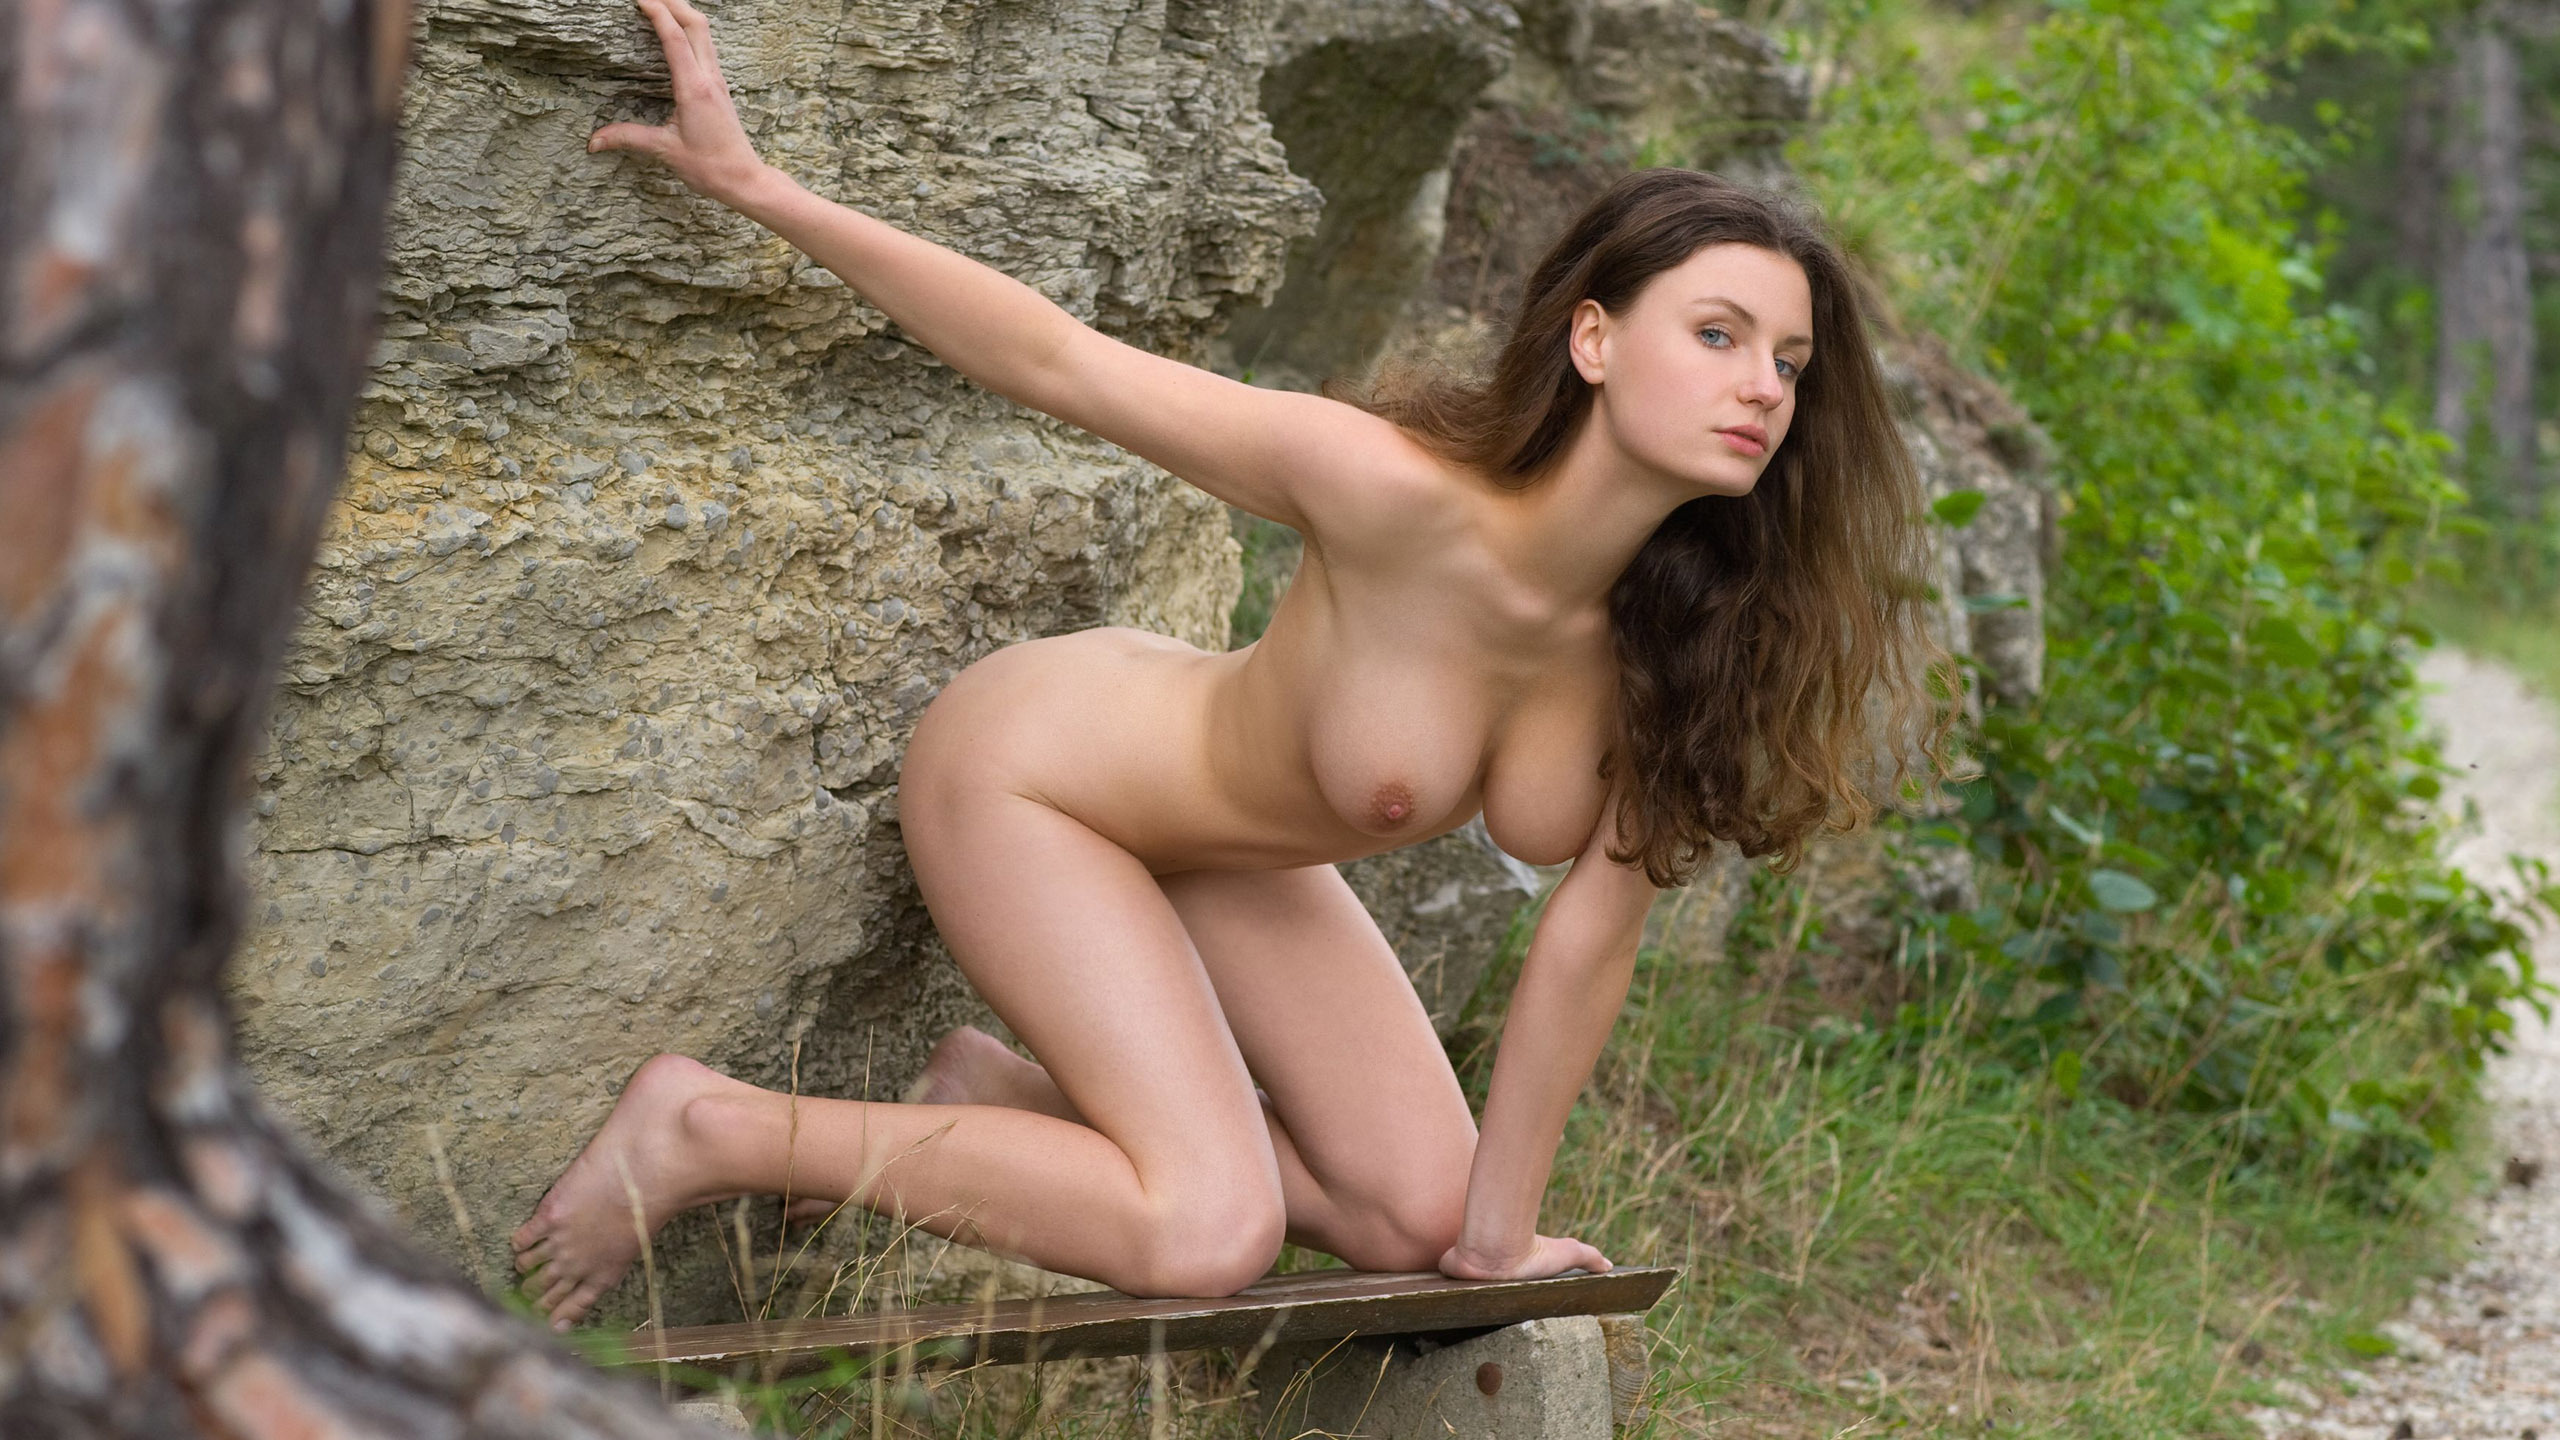 Female naked in wilderness, mdfn porn videos